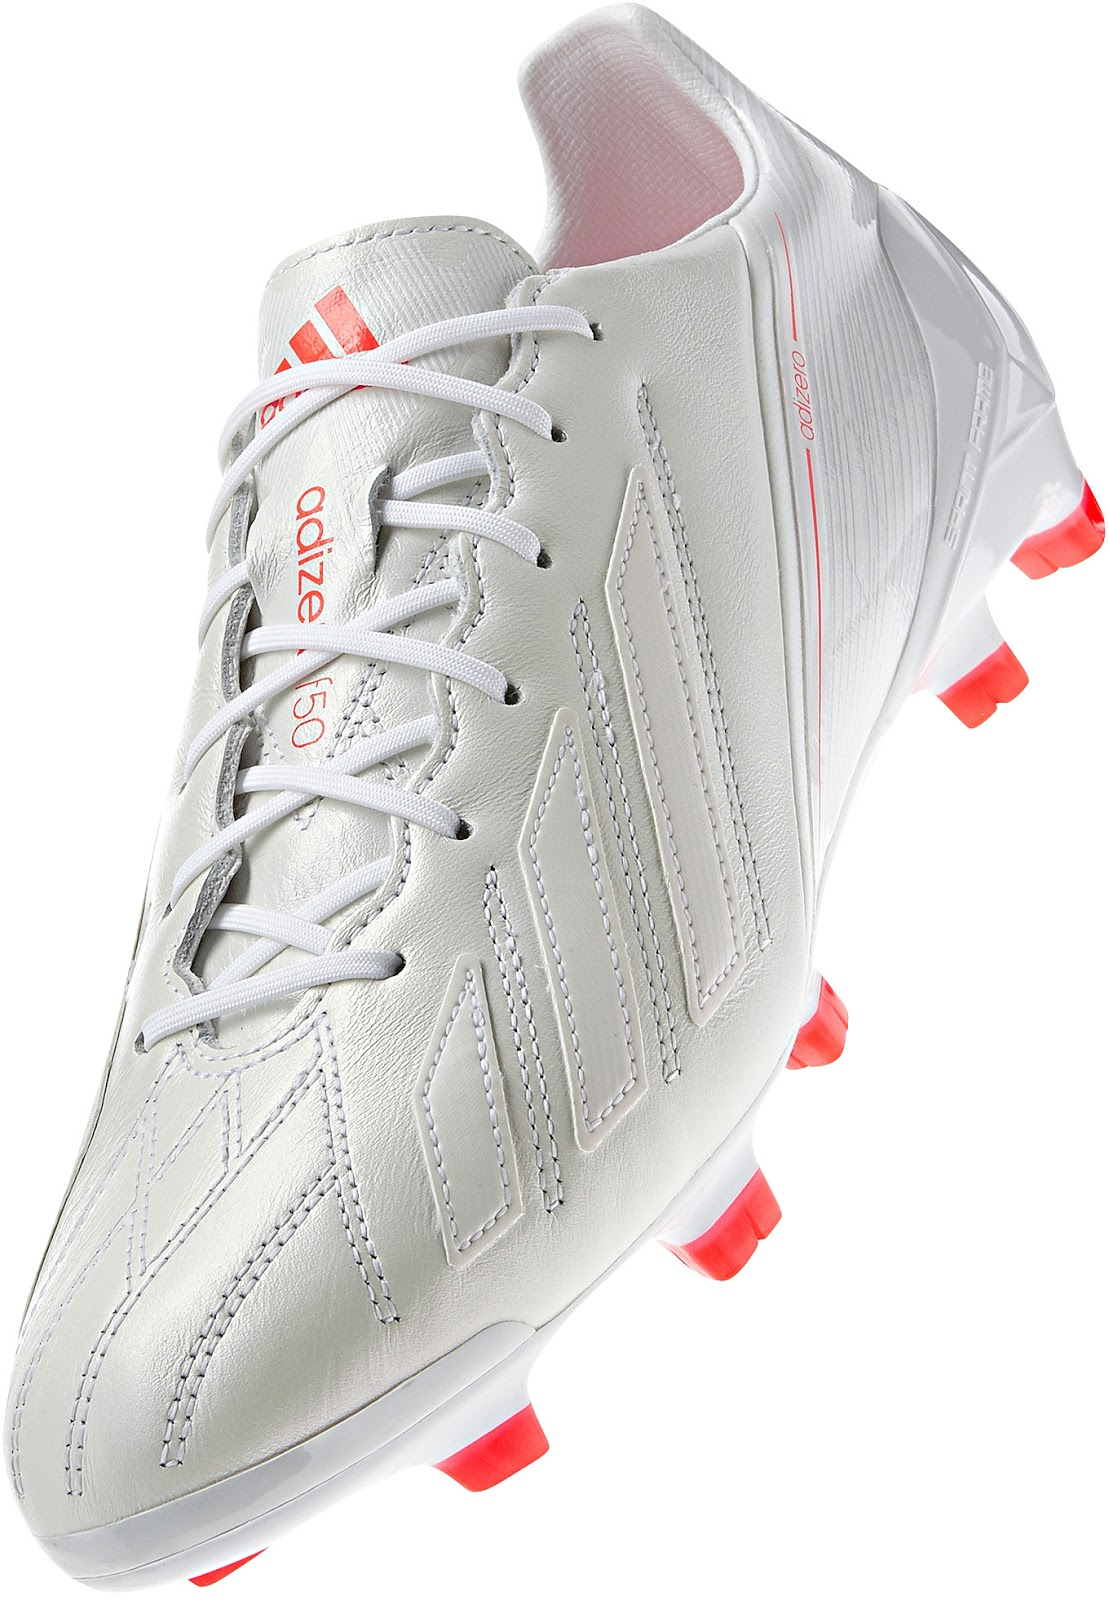 adidas adizero f50 iii whiteout boot released footy. Black Bedroom Furniture Sets. Home Design Ideas